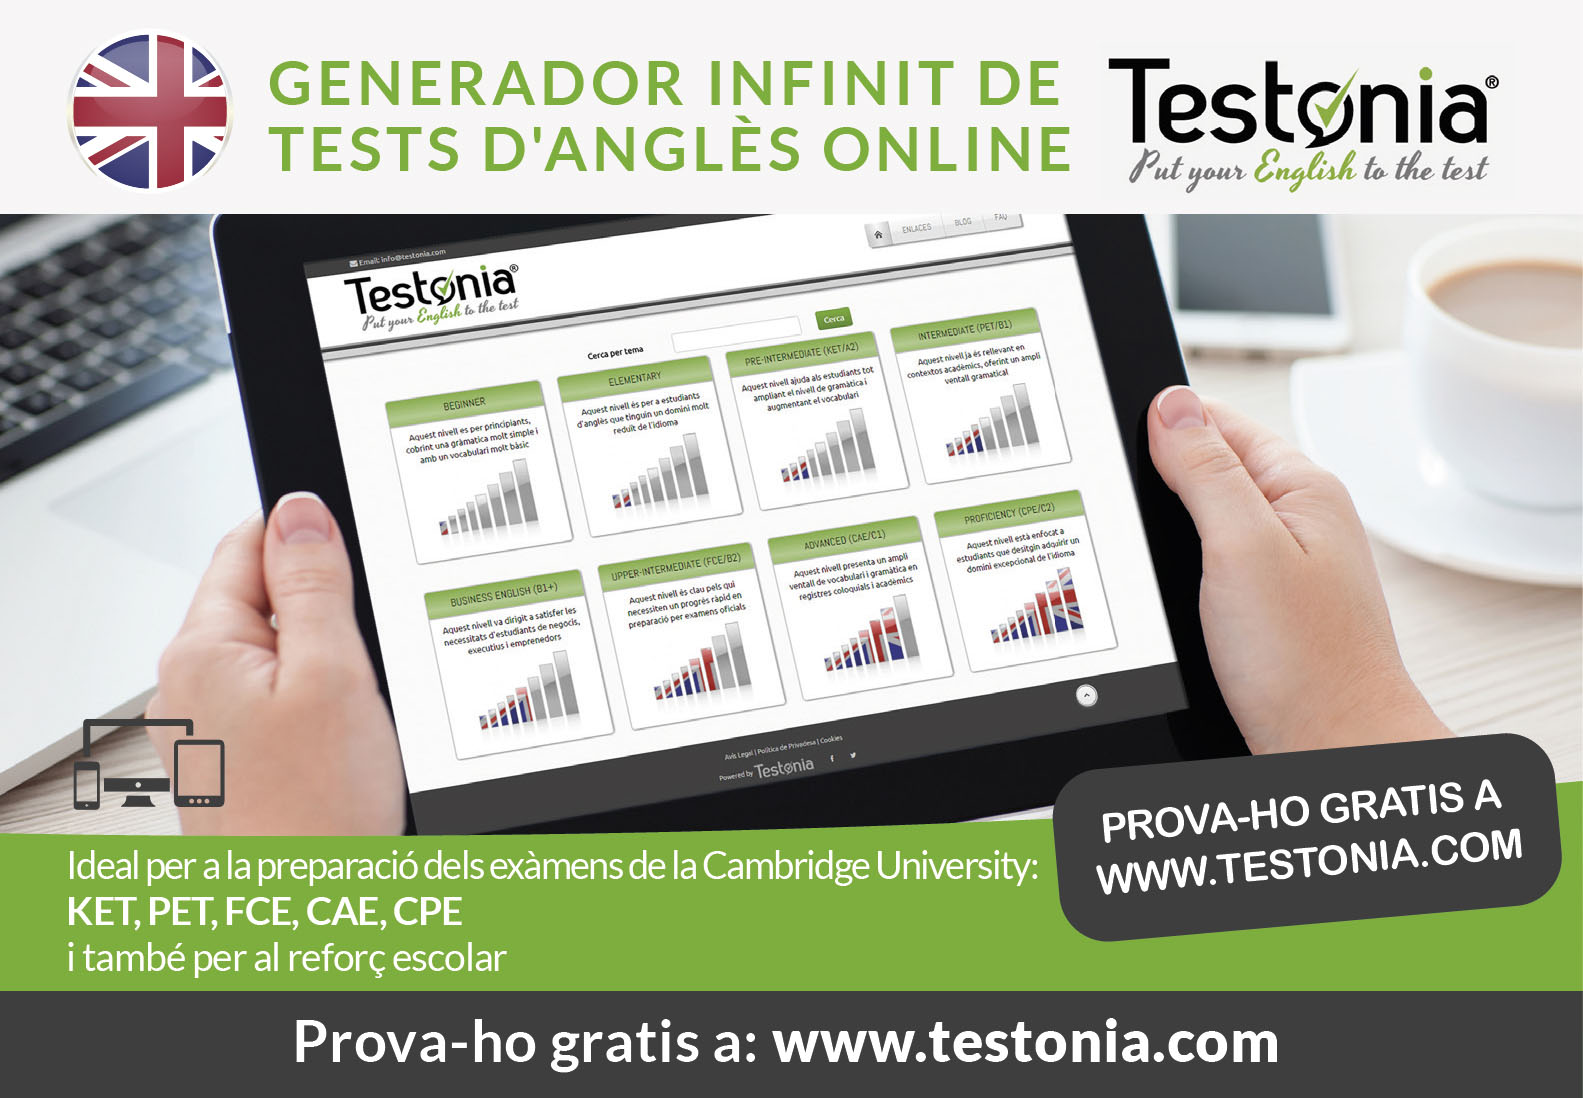 Testonia tests online gratis catala